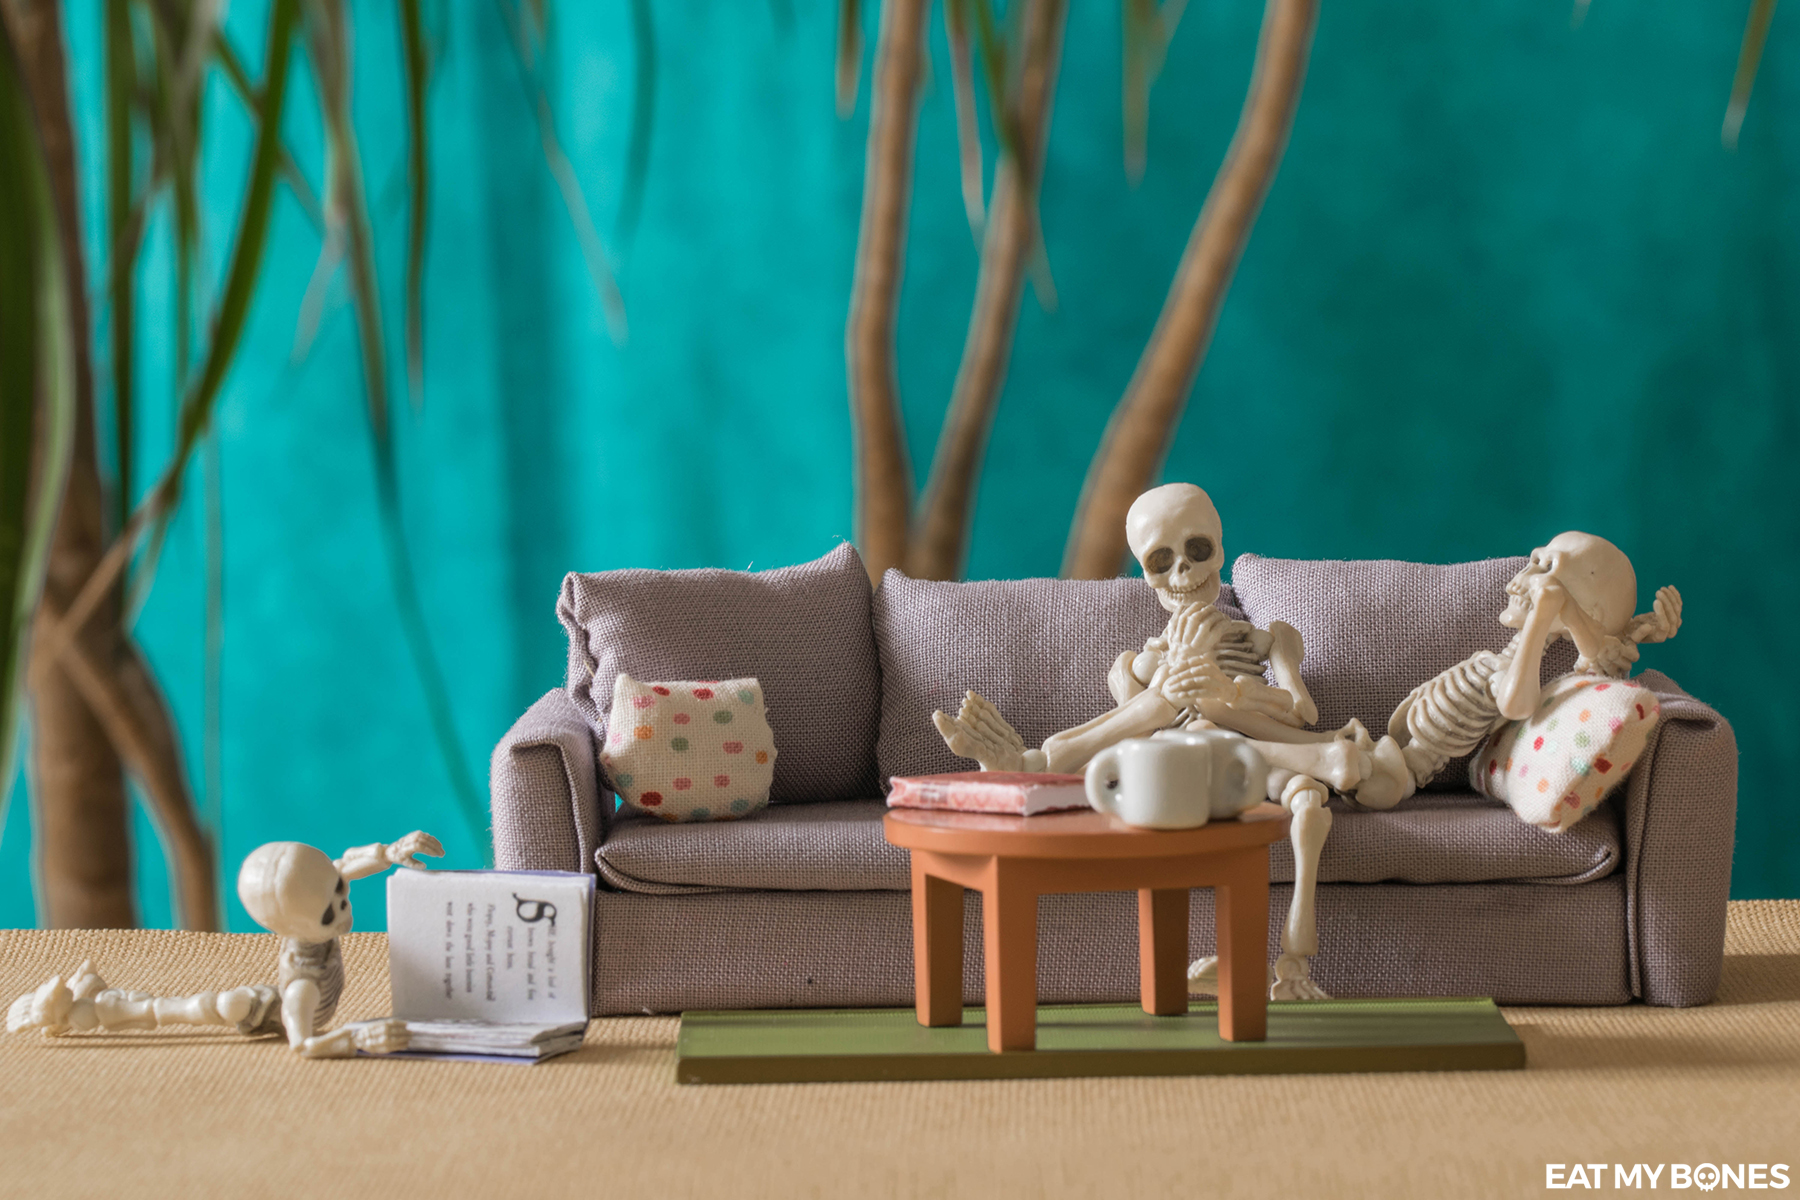 A couch for the skeleton family - Pose Skeleton - Toy photography - Miniature - Eat my Bones